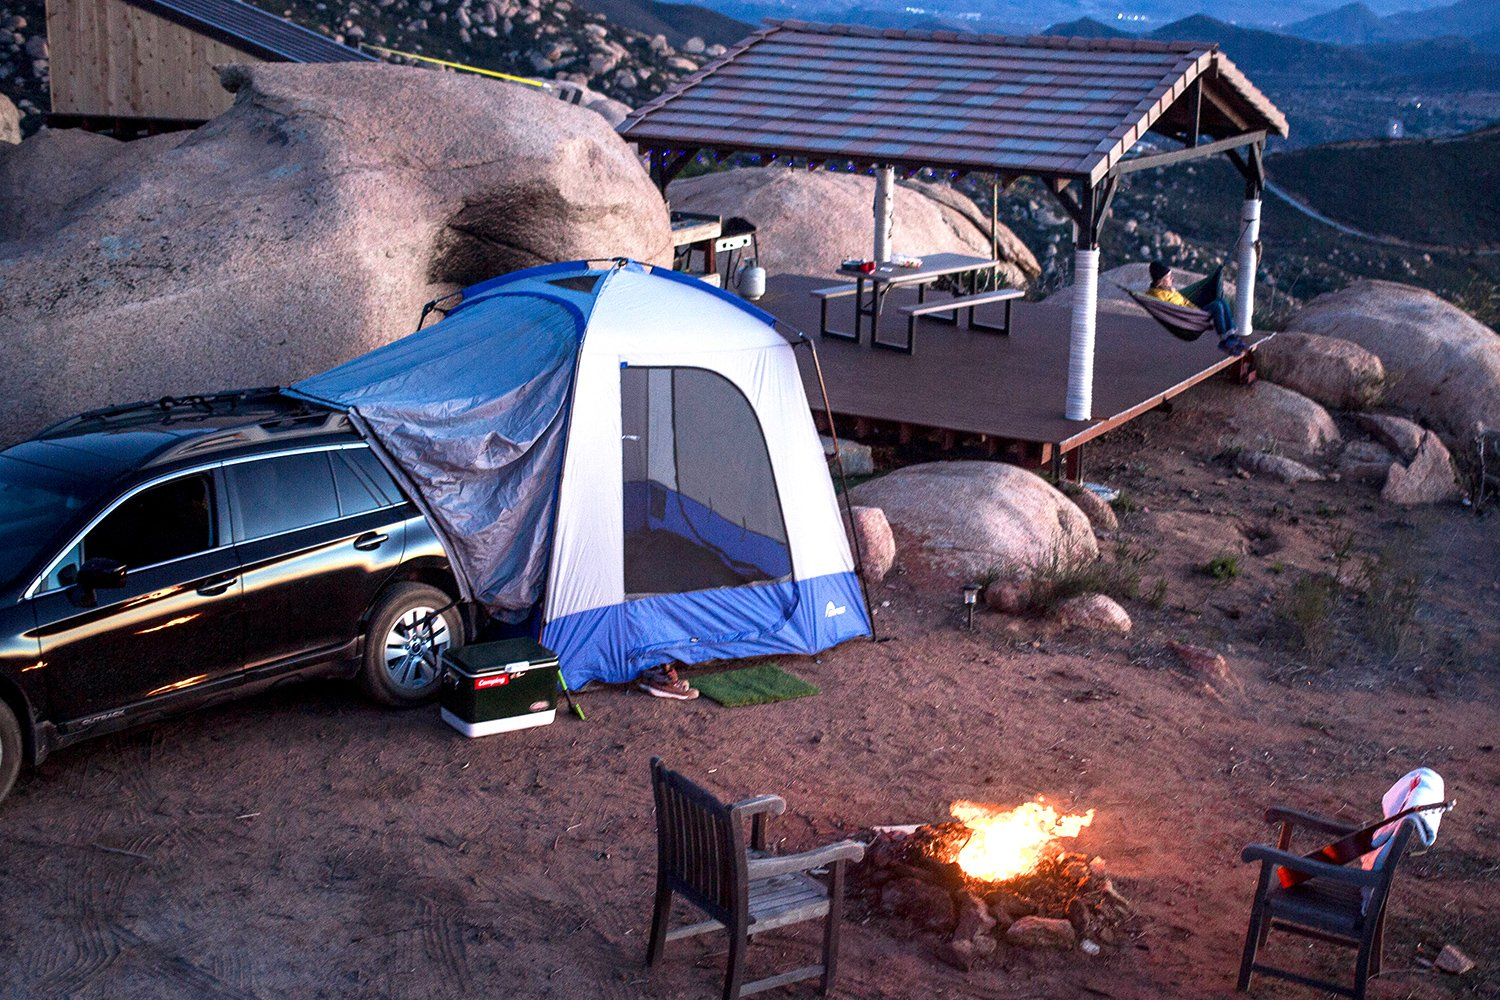 Sportz Minivan u0026 SUV Tent & Sportz Minivan u0026 SUV Tent - Camping Tent From Napier Ships Free